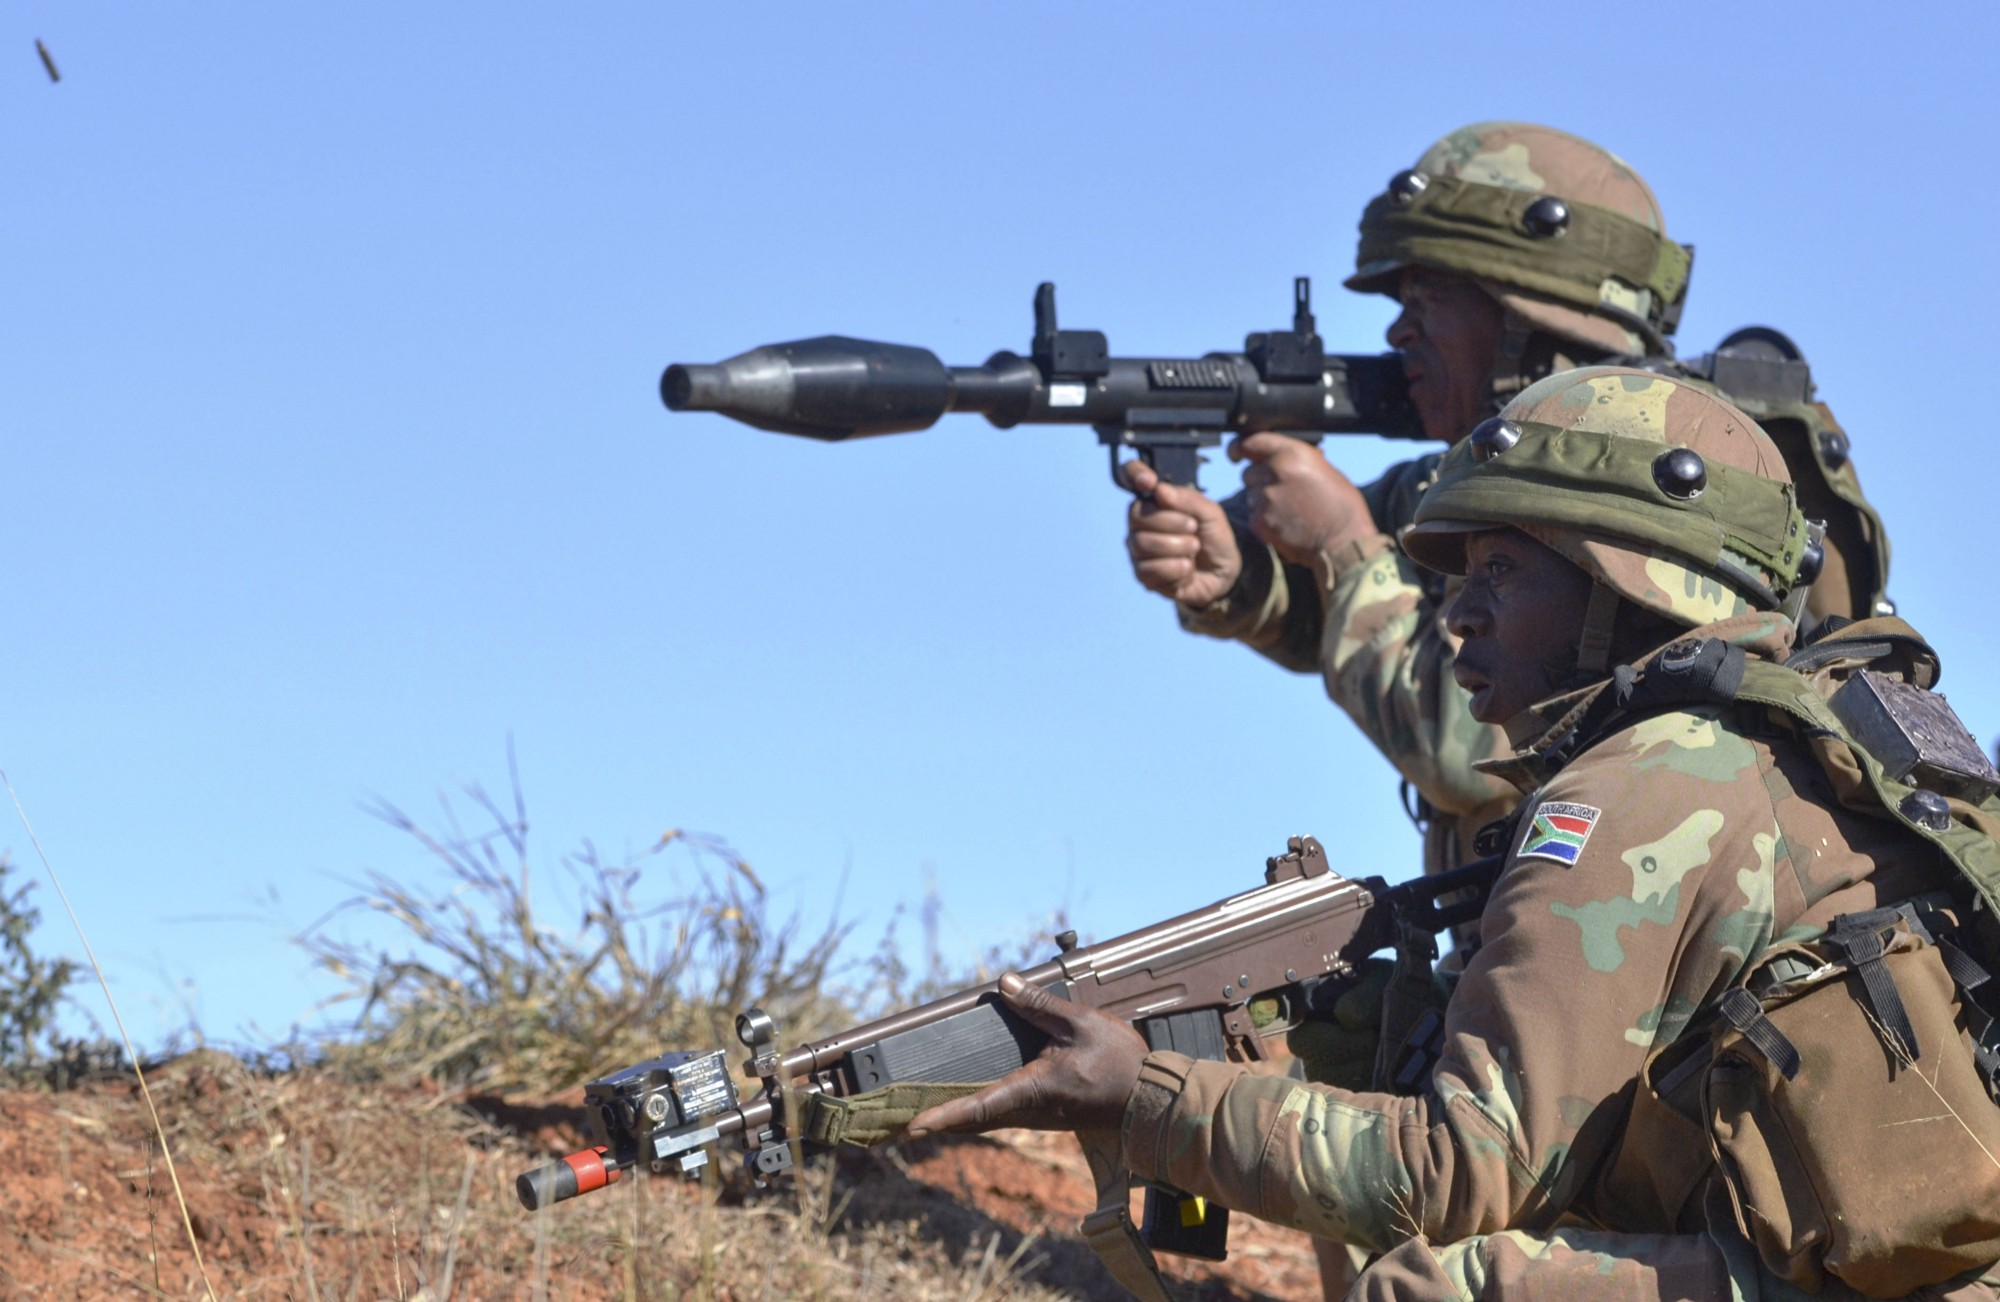 South Africa Wants To Resuscitate Its Arms Industry-9762